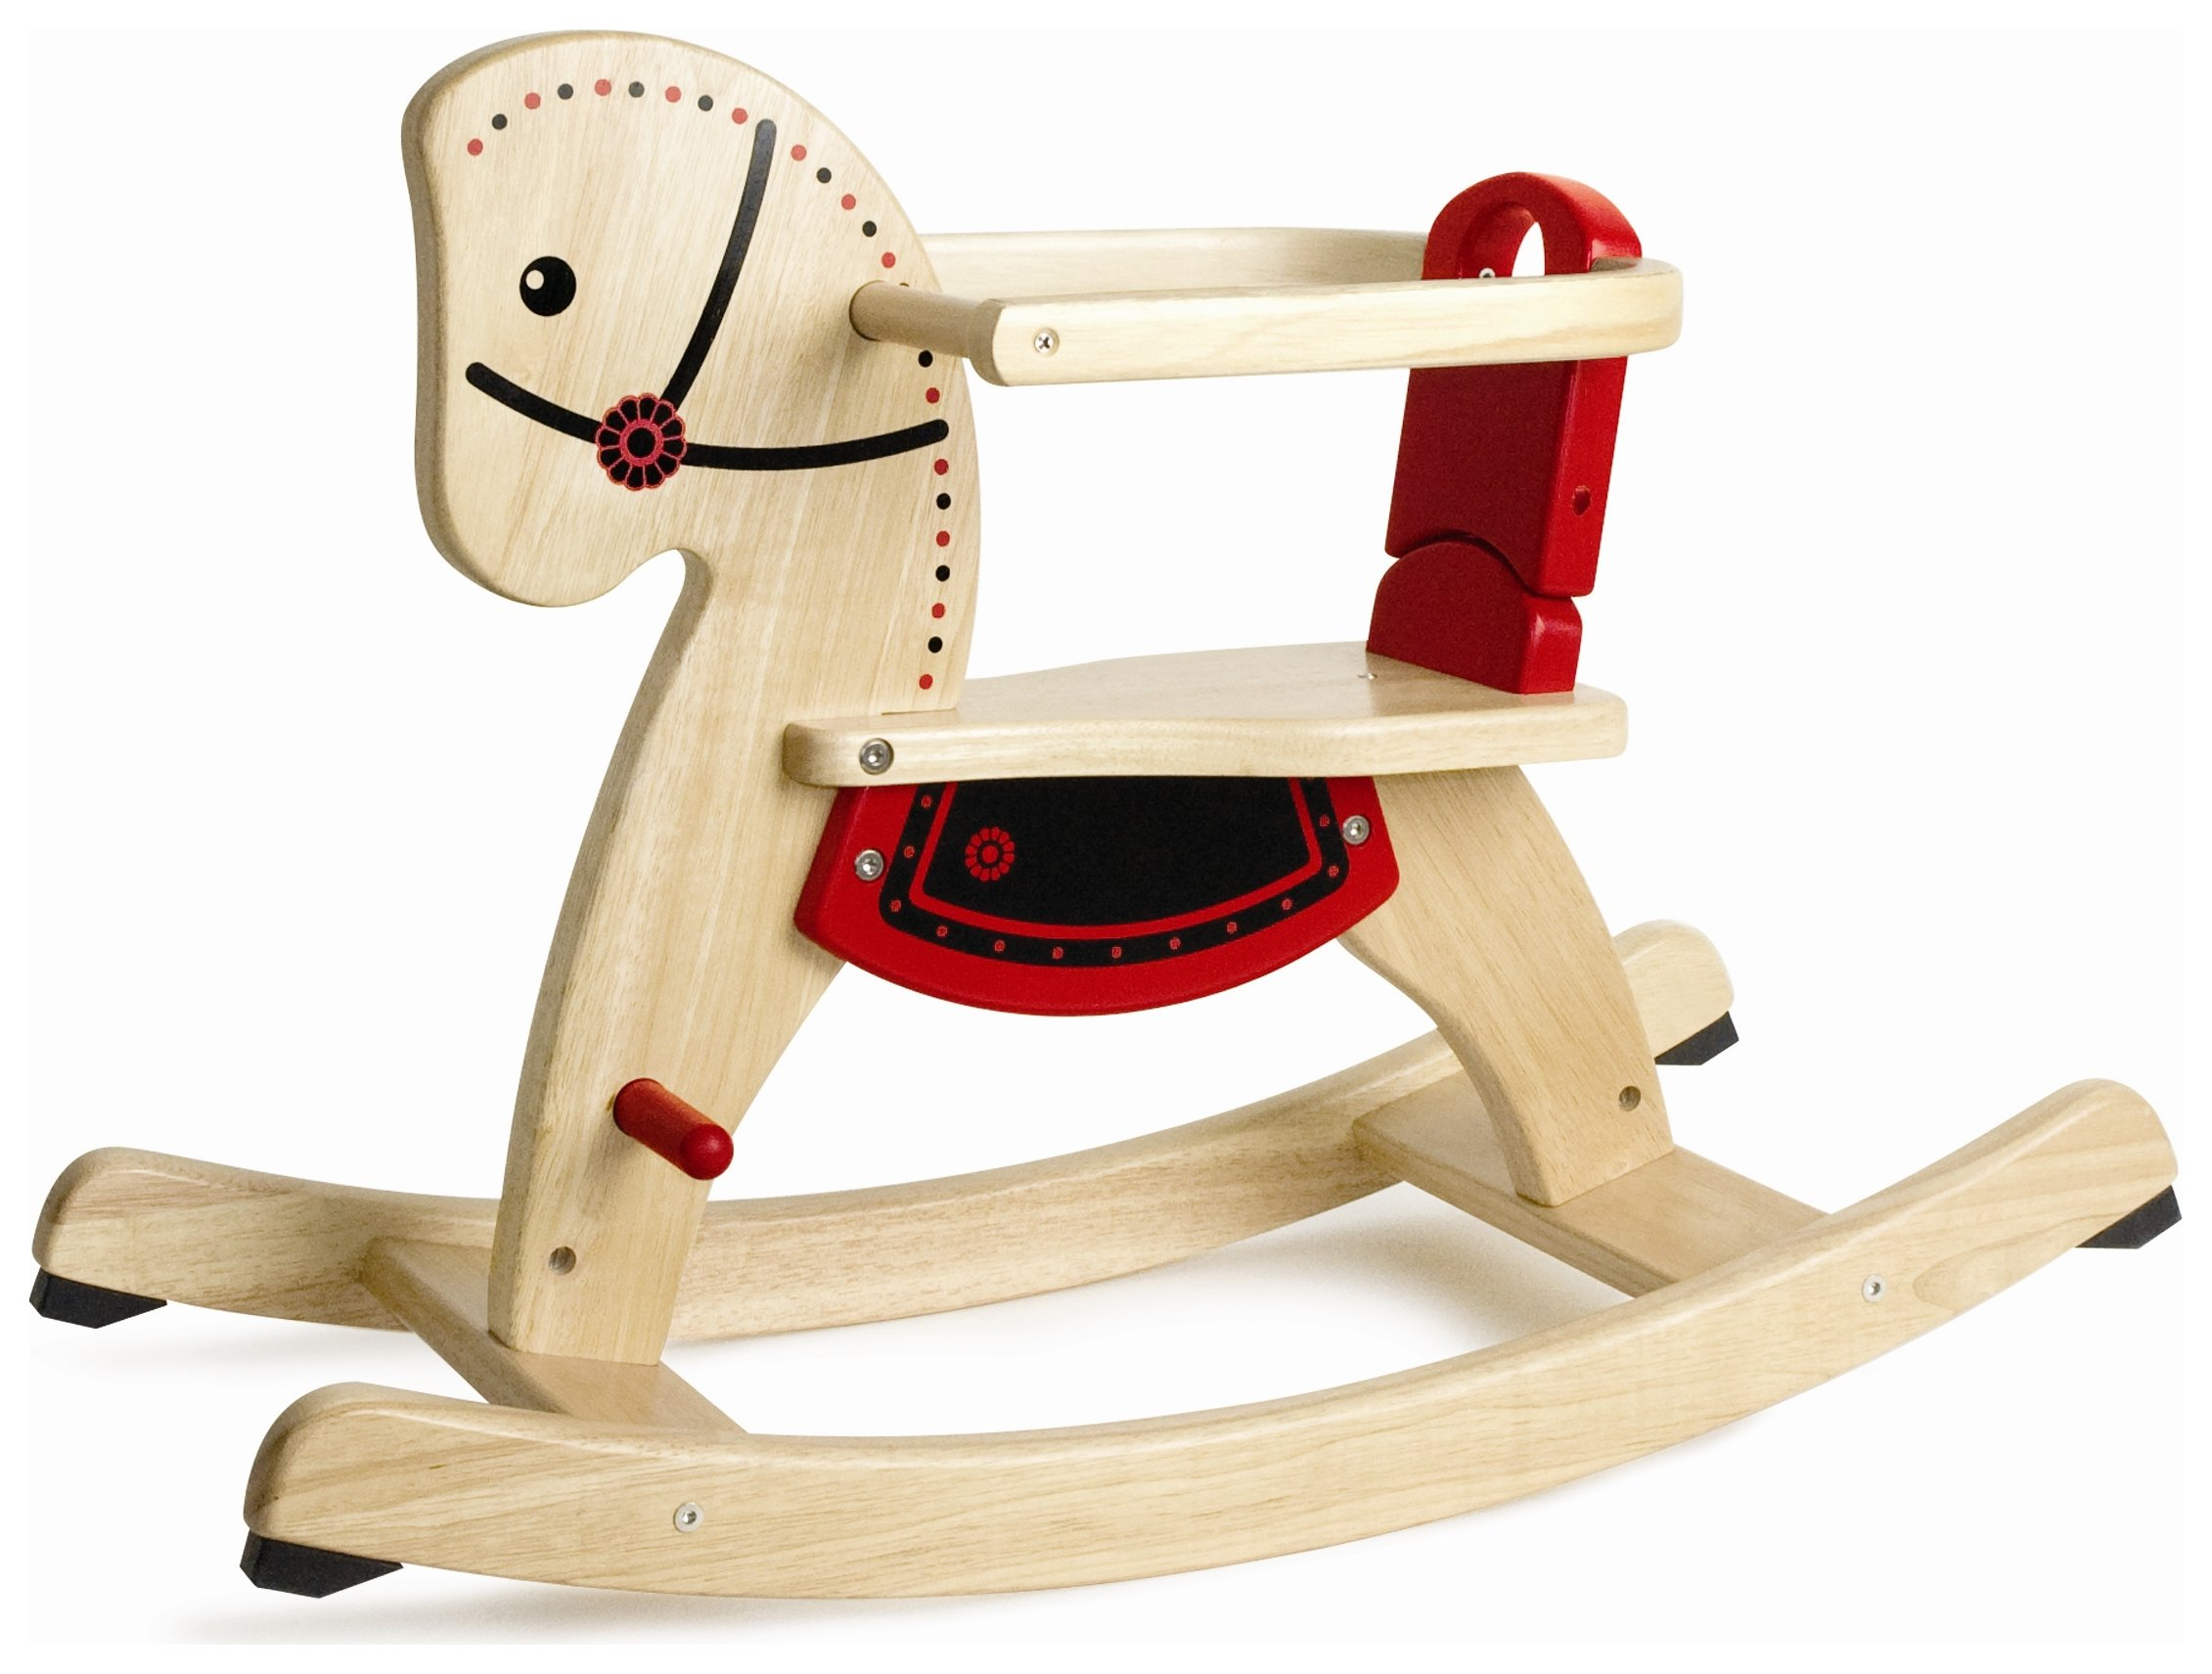 Image of Pintoy Shetland Rocking Horse.